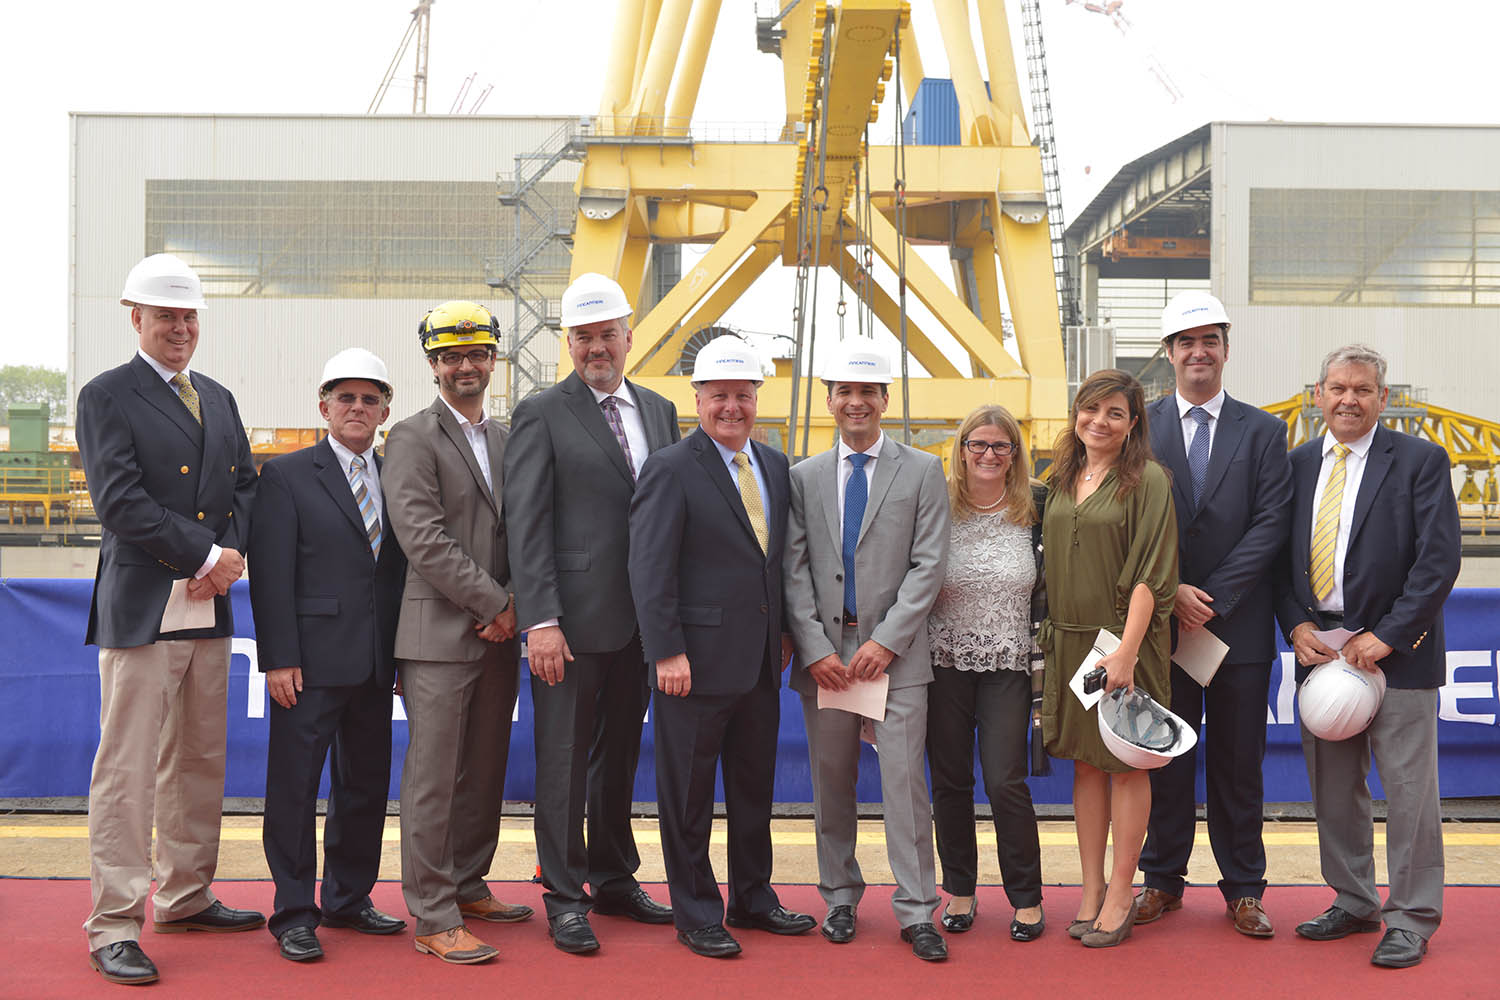 Executives from Fincantieri and Seabourn